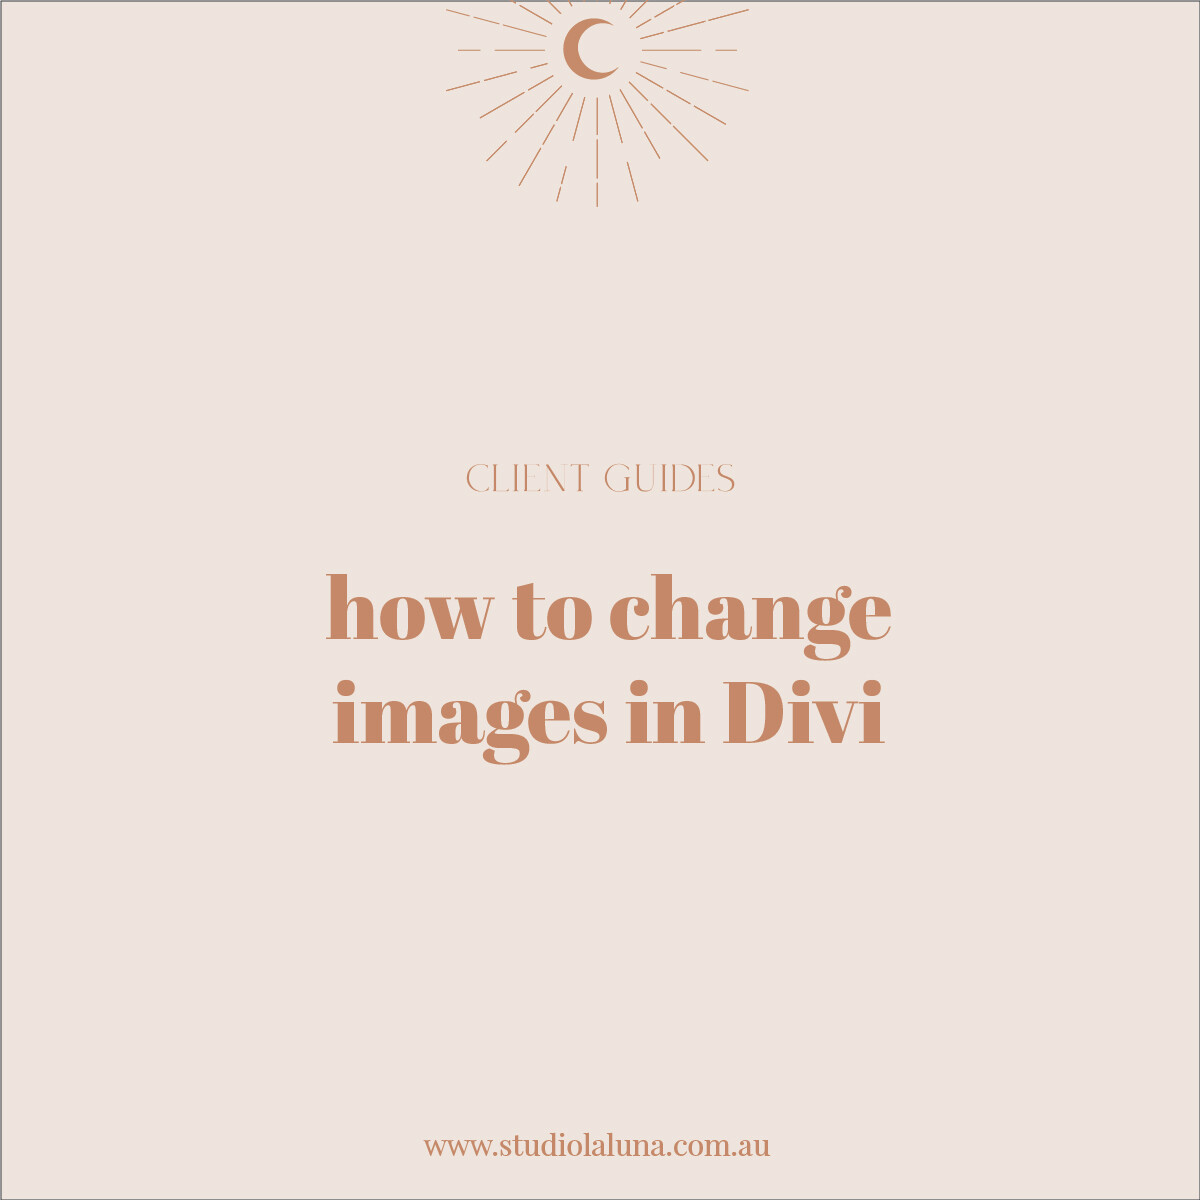 How to change images in Divi